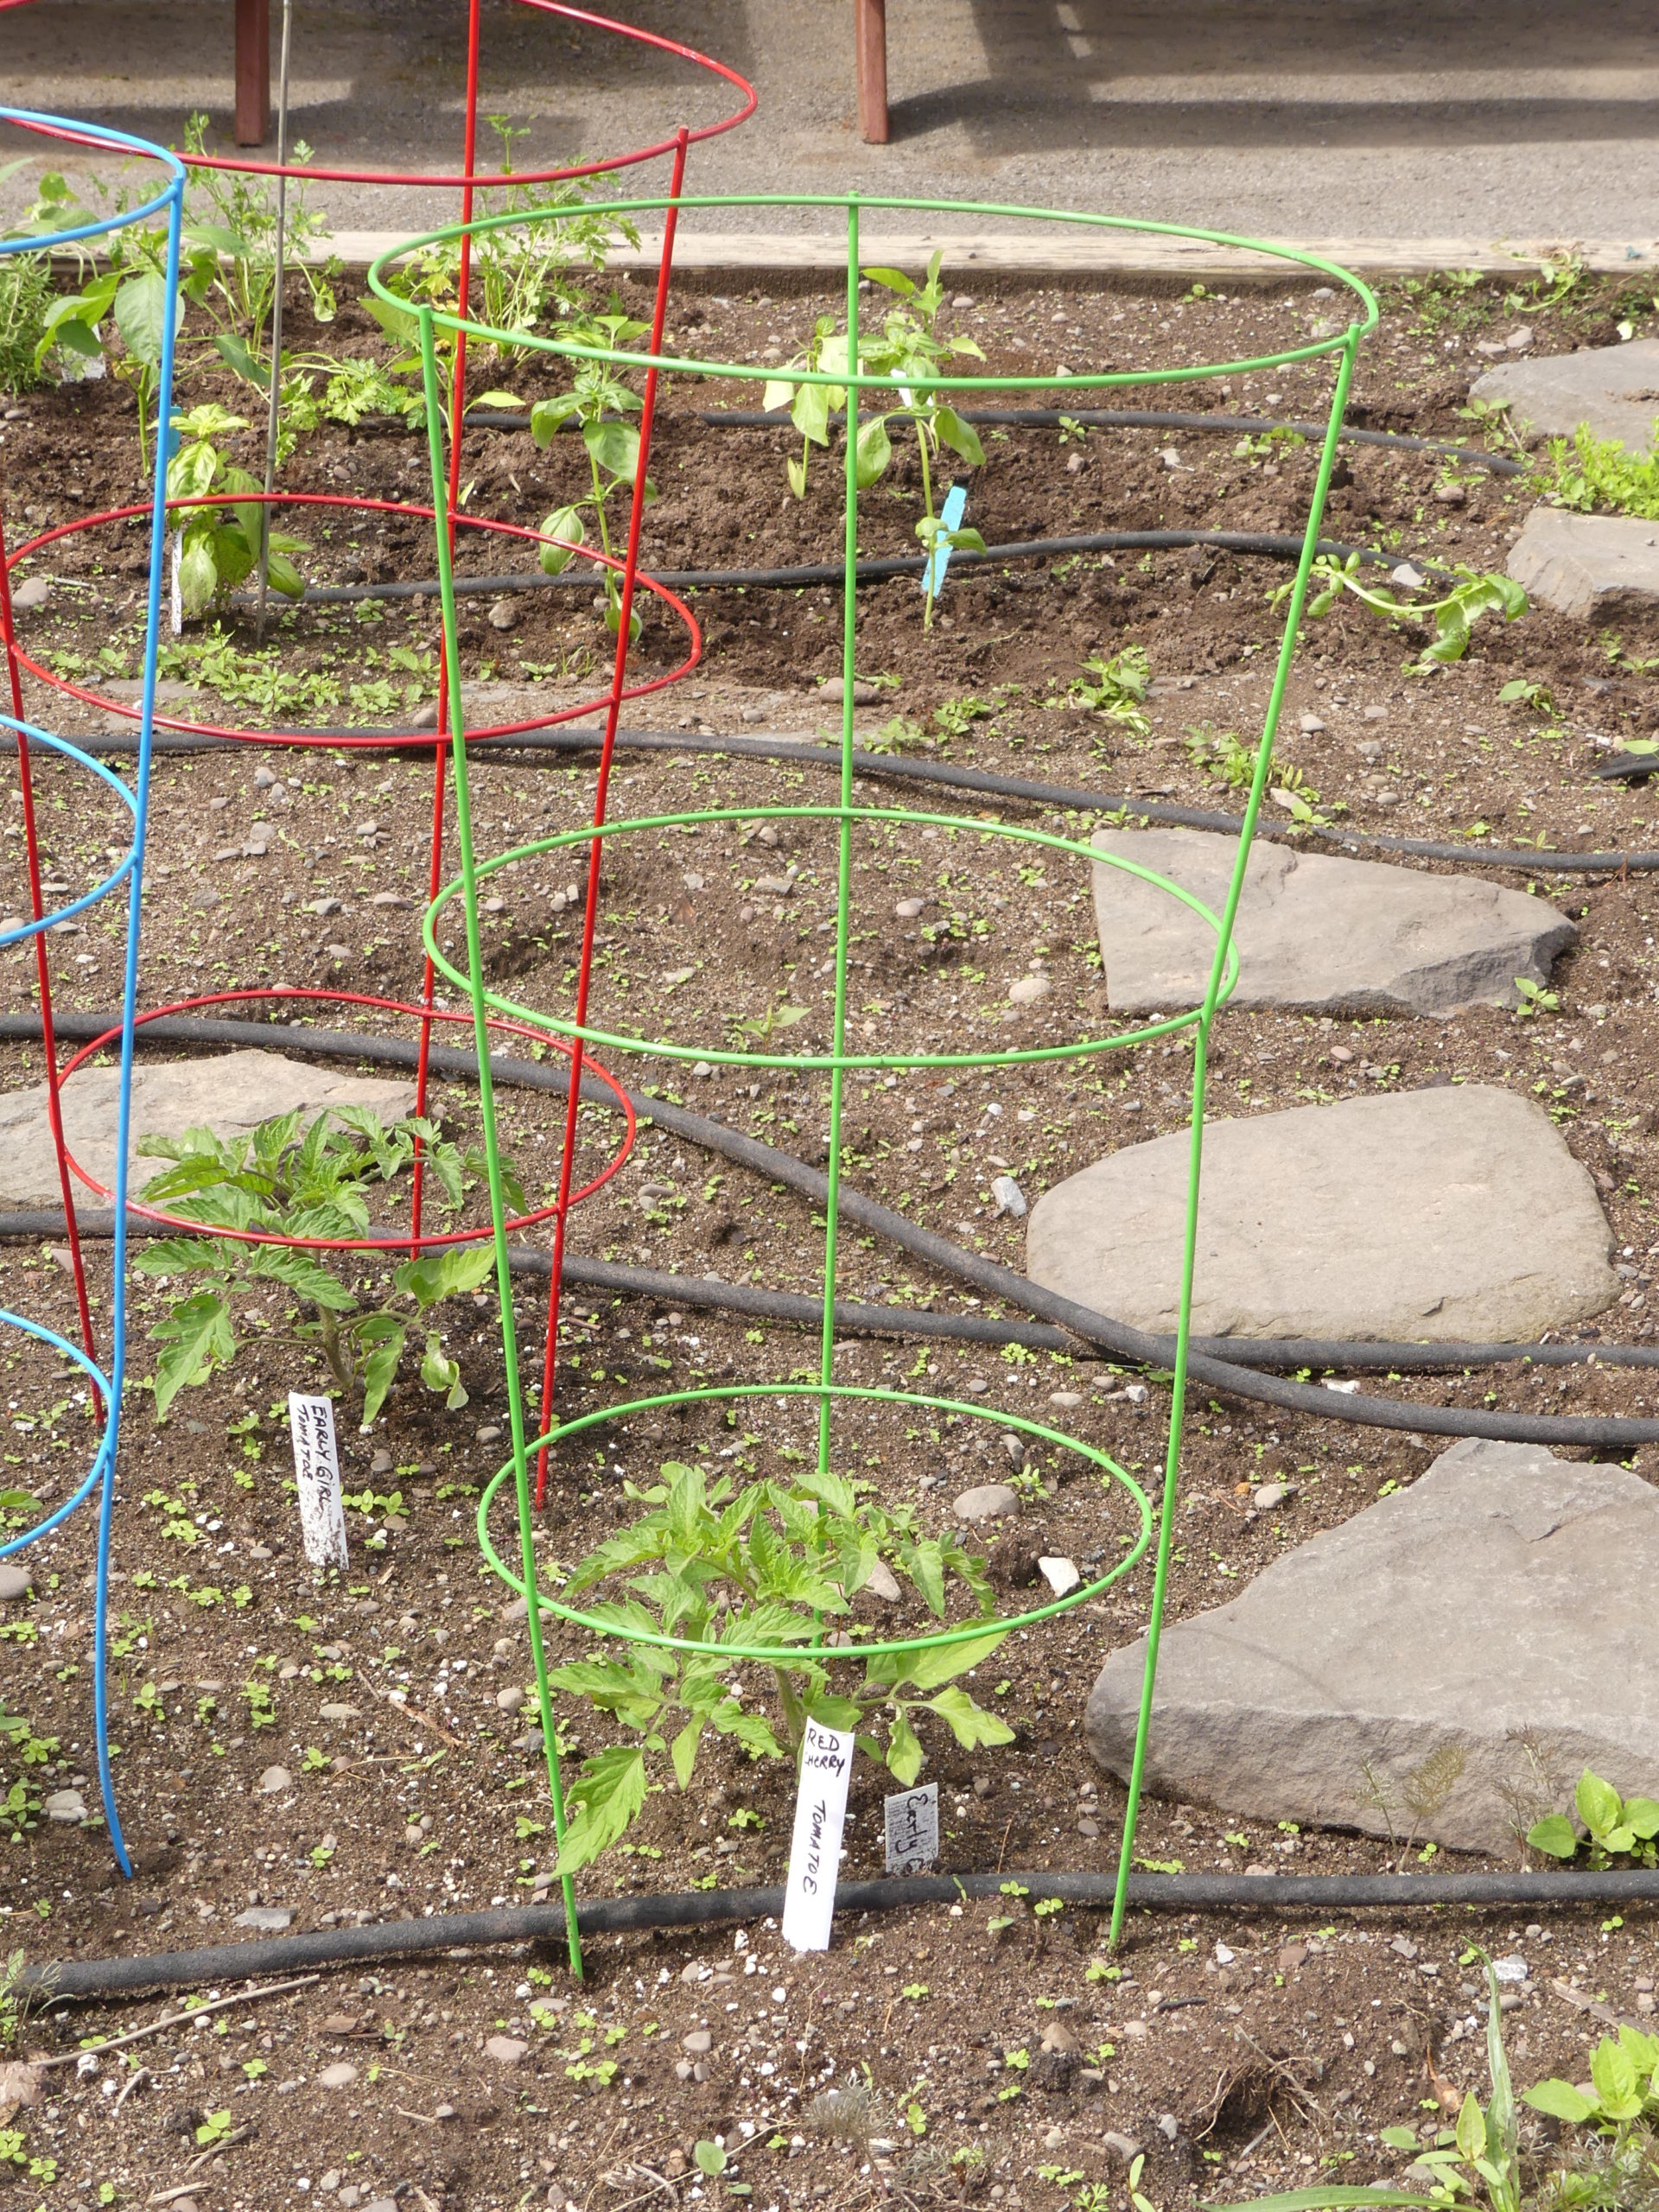 """The tag says """"Early Girl,"""" but it also says """"Red Cherry."""" Early Girl is actually an indeterminate tomato yielding 6-to-8-ounce fruits on 8-foot-tall plants. Not a cherry. Correct labels can be very helpful. Early caging is a plus, though. A cage for an 8-foot-tall plant may not be very successful, though. ANDREW MESSINGER"""